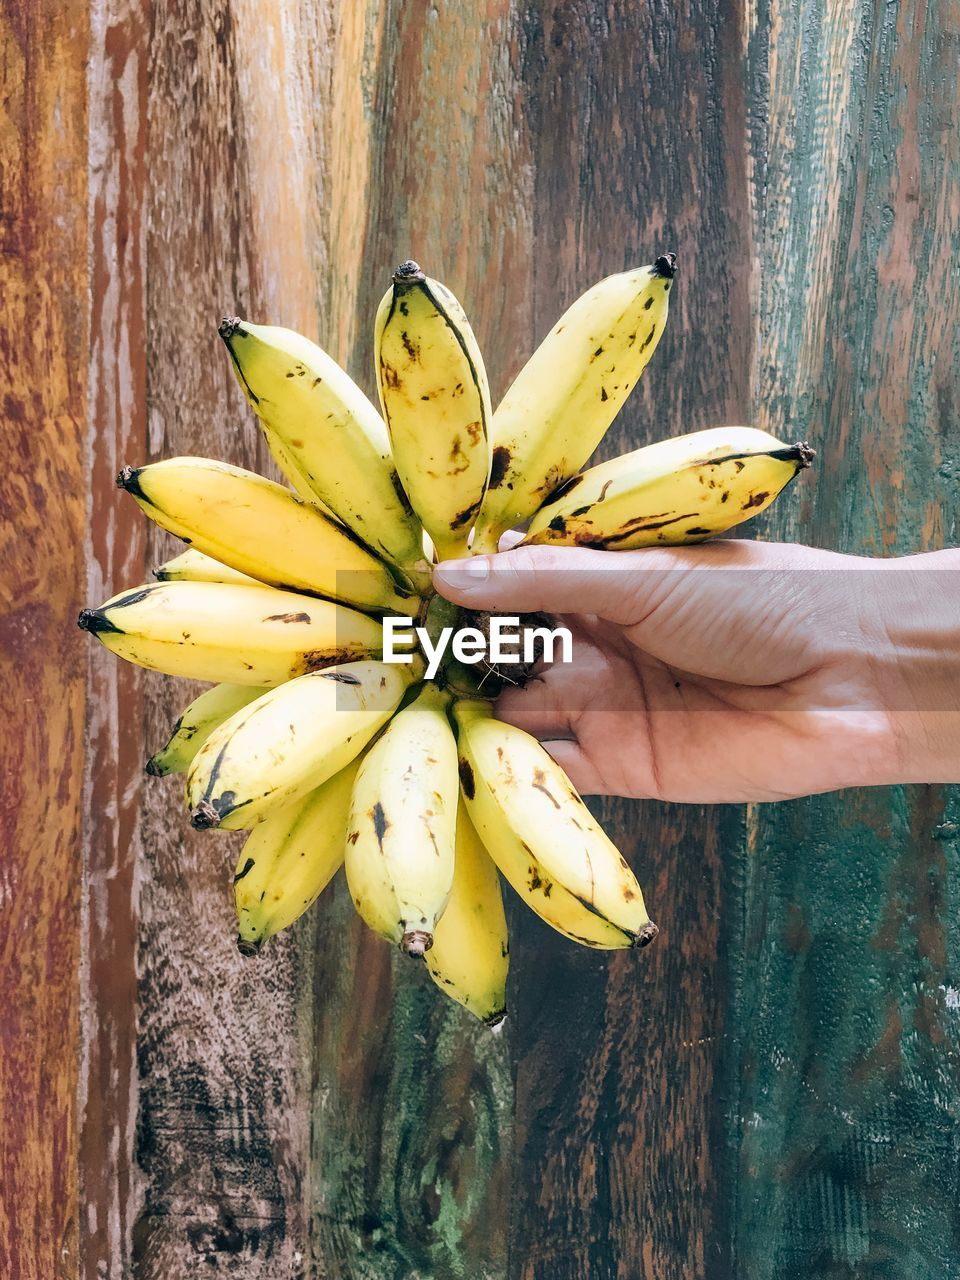 yellow, hand, banana, human hand, food, freshness, healthy eating, one person, fruit, human body part, food and drink, wellbeing, wood - material, real people, holding, unrecognizable person, tropical fruit, bunch, finger, ripe